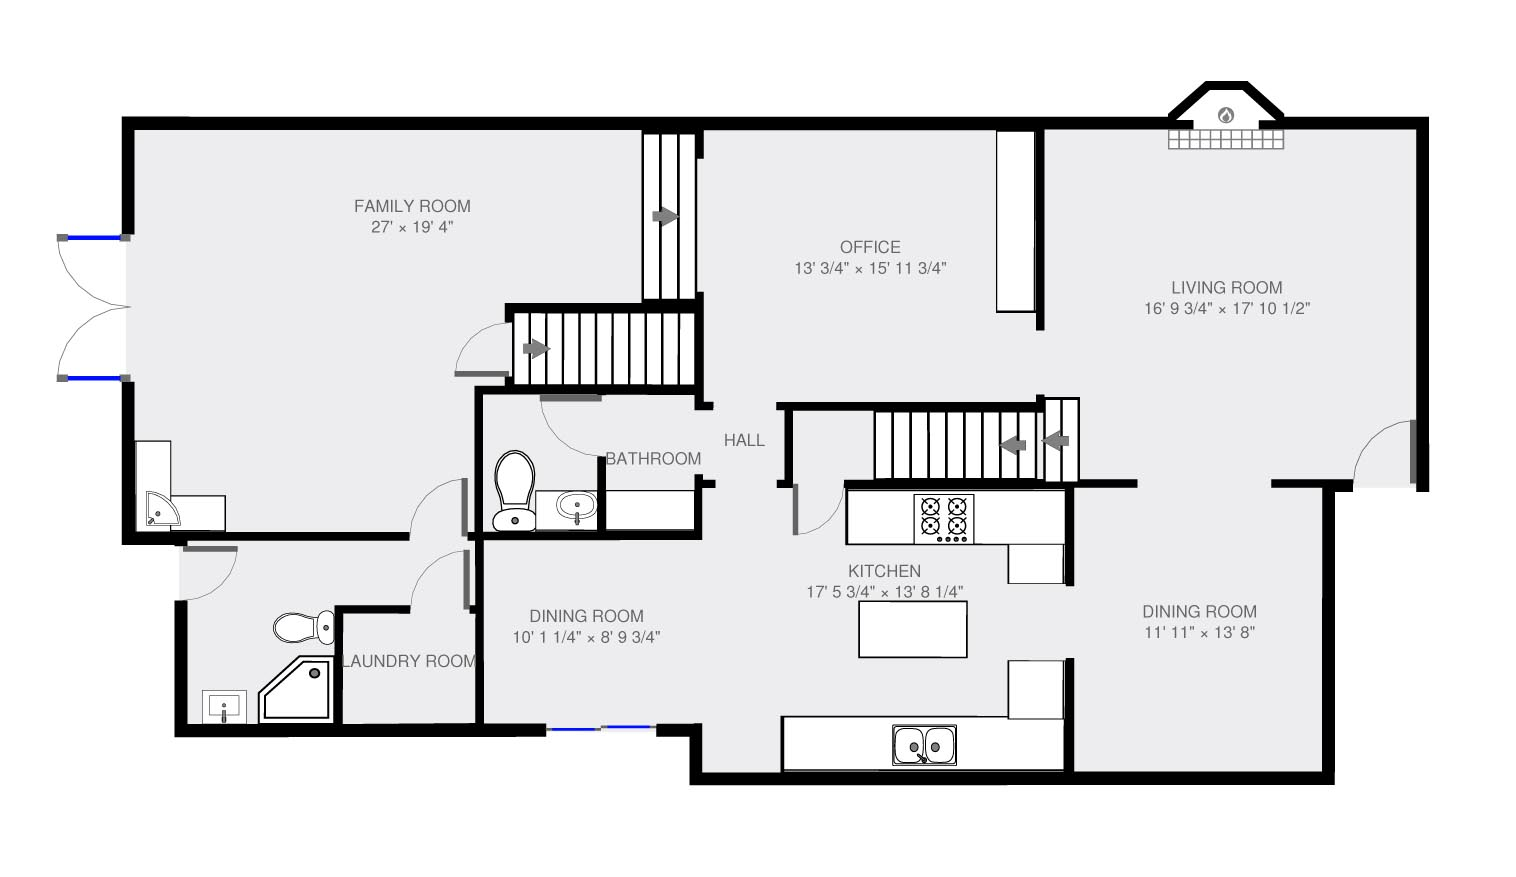 Standard House Measurements 2d Floor Plan With Dimension 1st Floor Jerry Sun